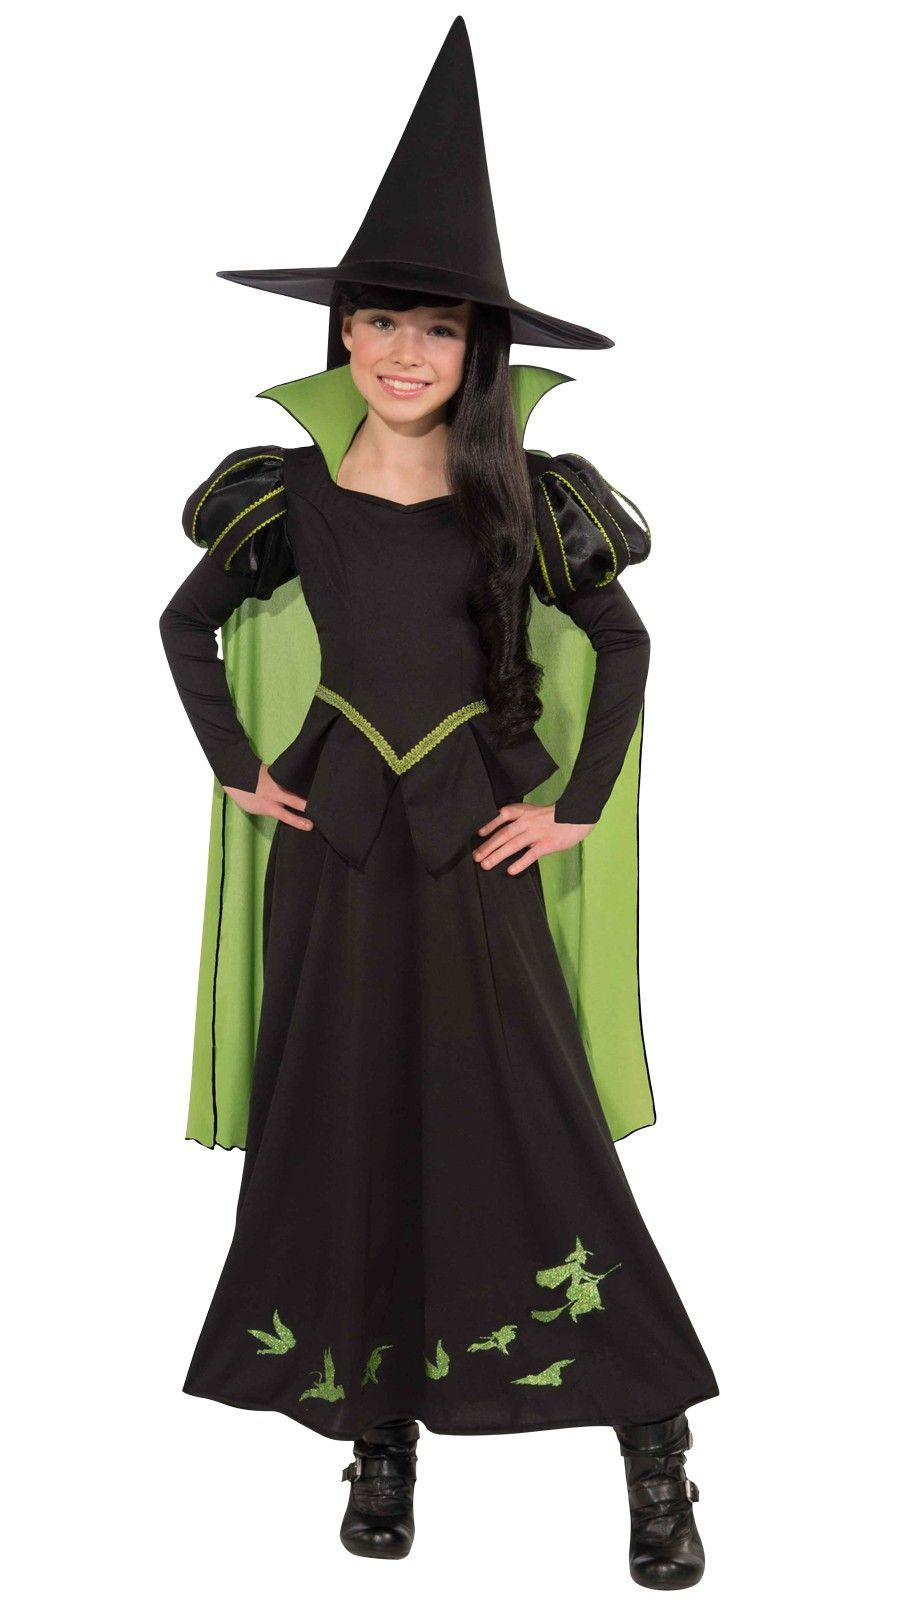 Wizard of Oz Wicked Witch of the West Child Girlu0027s Costume | Book Week costume idea | Halloween costume idea  sc 1 st  Pinterest & The Wizard of Oz Wicked Witch of the West Child Girlu0027s Costume ...